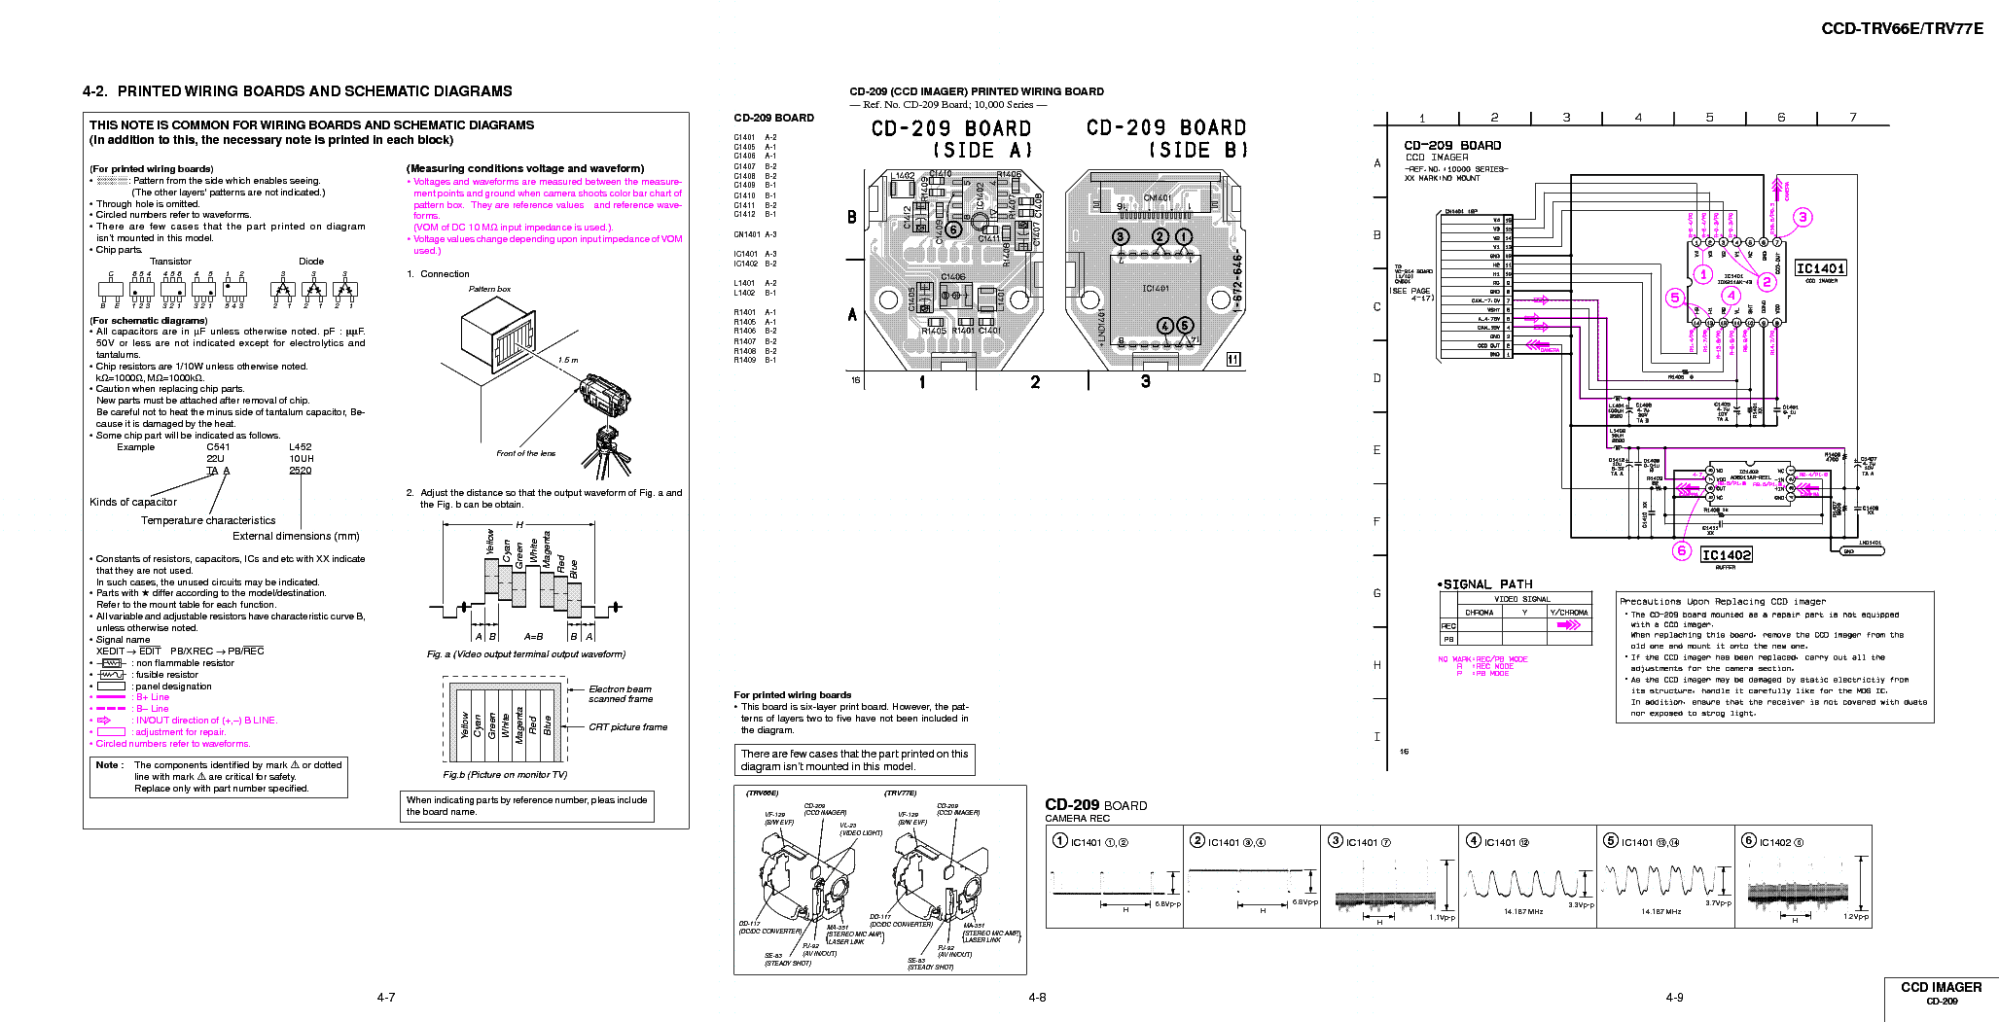 hight resolution of sony ccd trv66e 77e service manual 2nd page